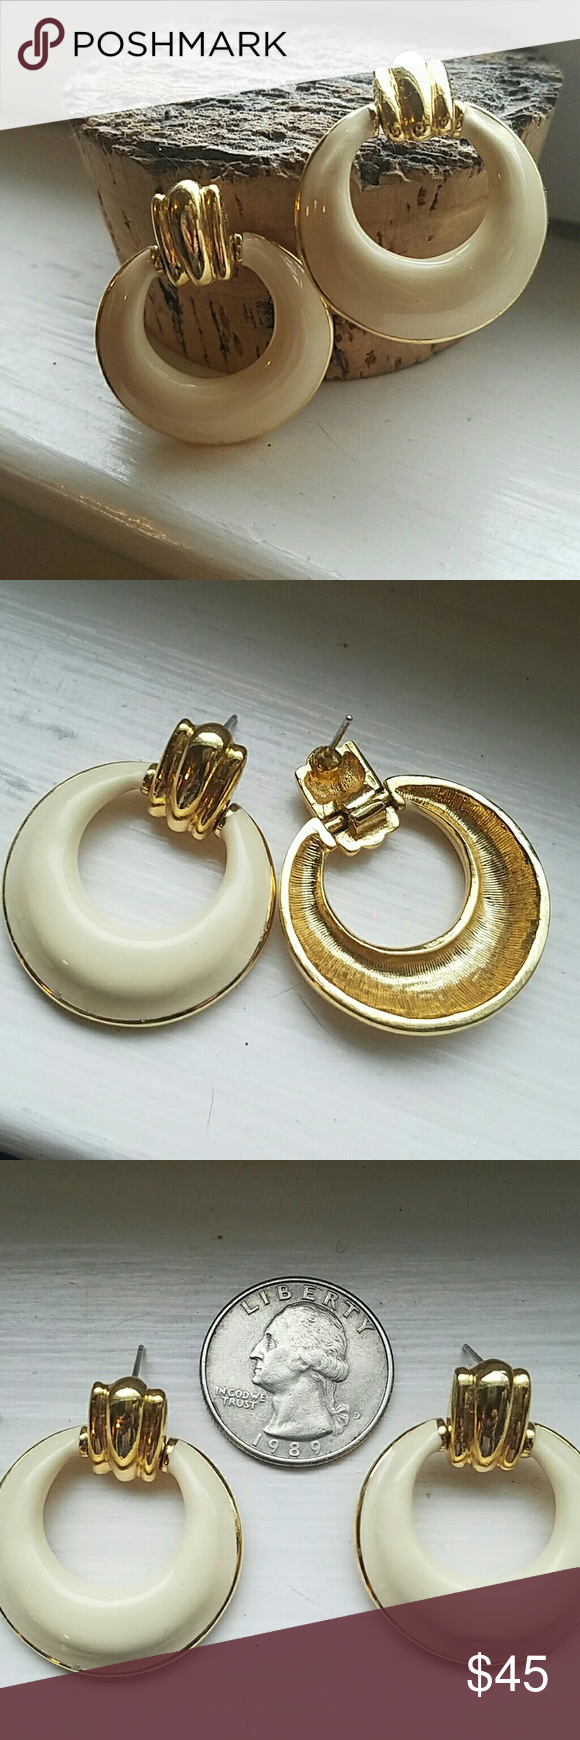 Vintage gold plate and enamel earrings Classic ans sophisticated, these earrings are vintage circa 1970's/ 80's.  They were my mothers, and she was the most classy woman I ever knew.  They measure 1.3 inches top to bottom and 1. 25 across.  These are posts, and the original backs are not present.  I will include comfortable soft rubber backs.  Very good condition. Jewelry Earrings